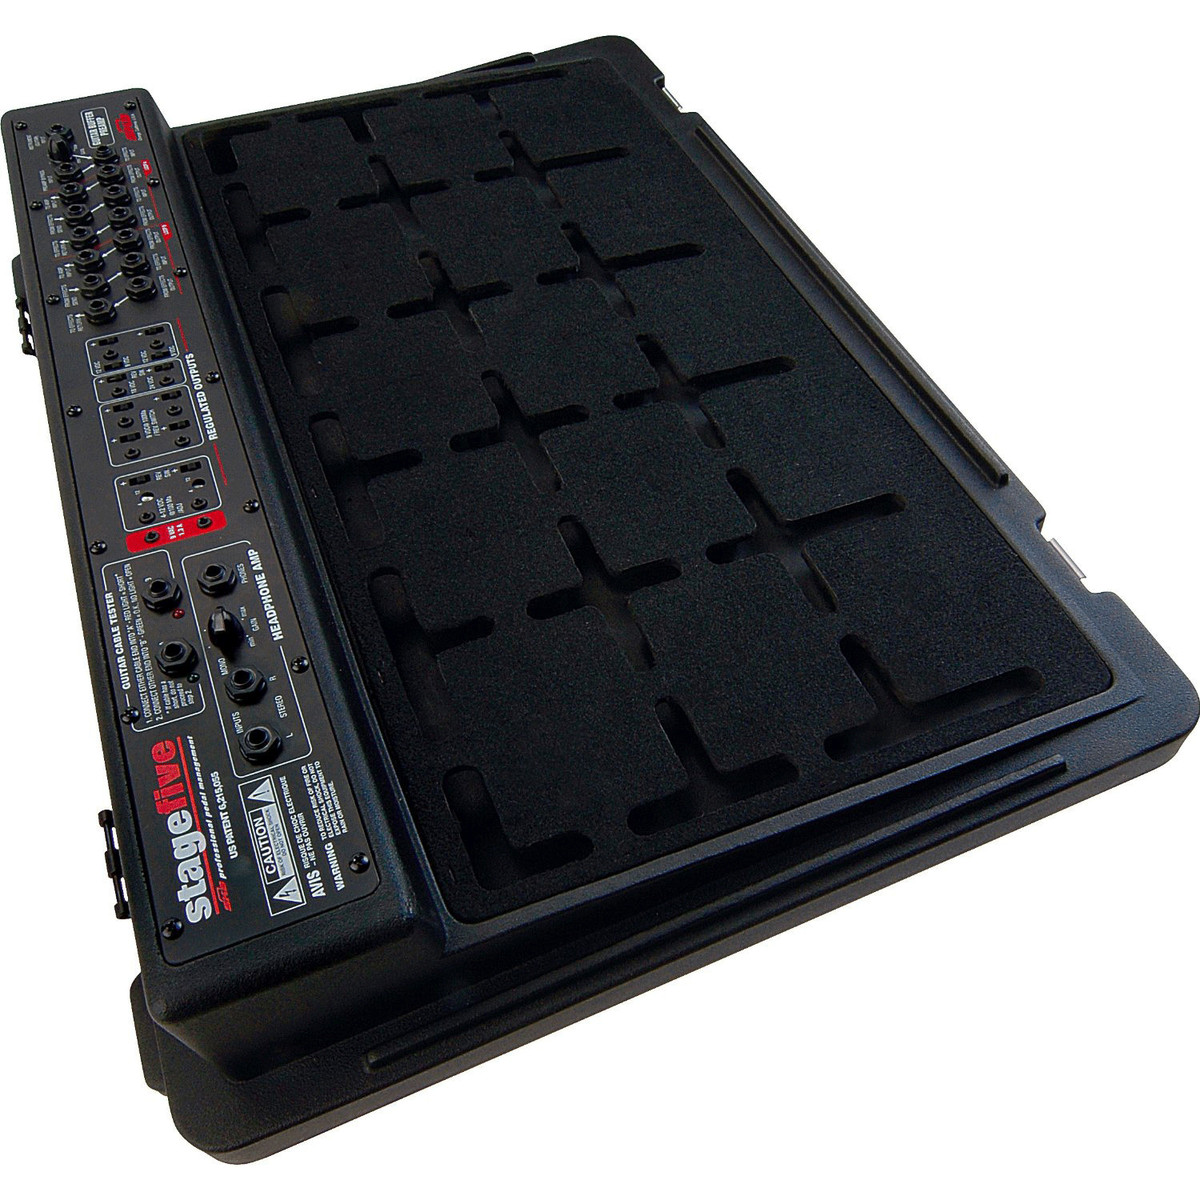 skb stagefive professional pedal board uk power supply nearly new at. Black Bedroom Furniture Sets. Home Design Ideas